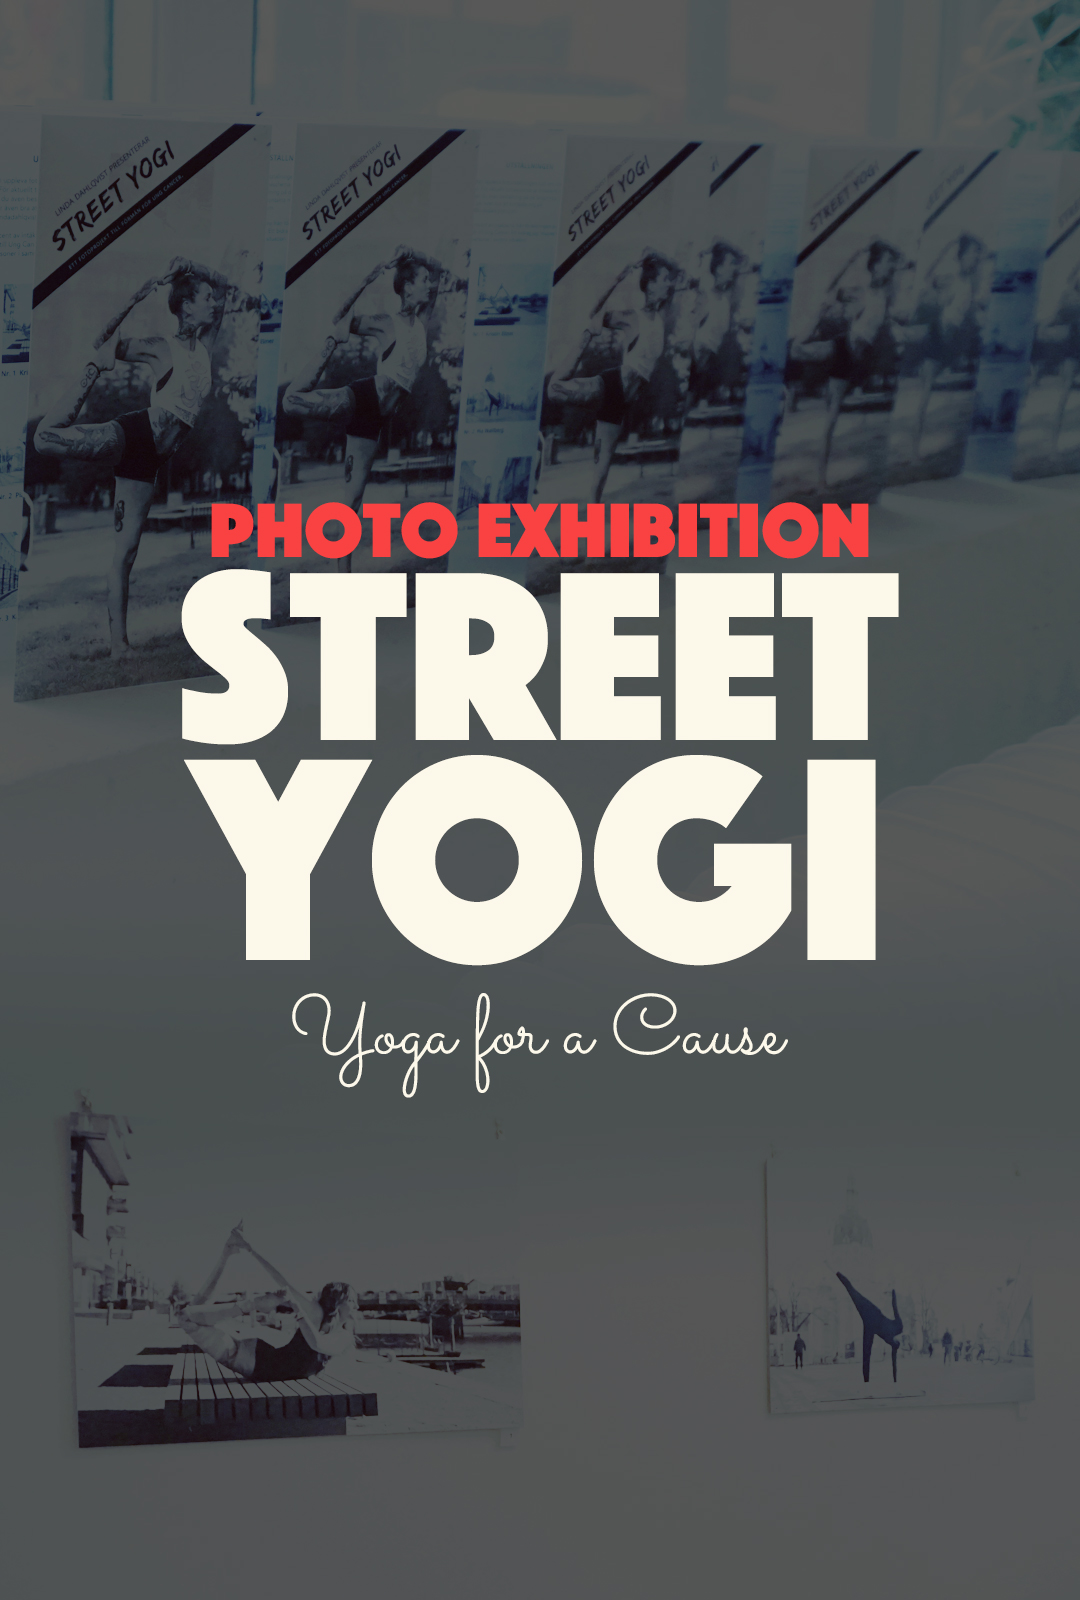 The Street Yogi Photo Exhibition | http://BananaBloom.com #streetyogi #yoga